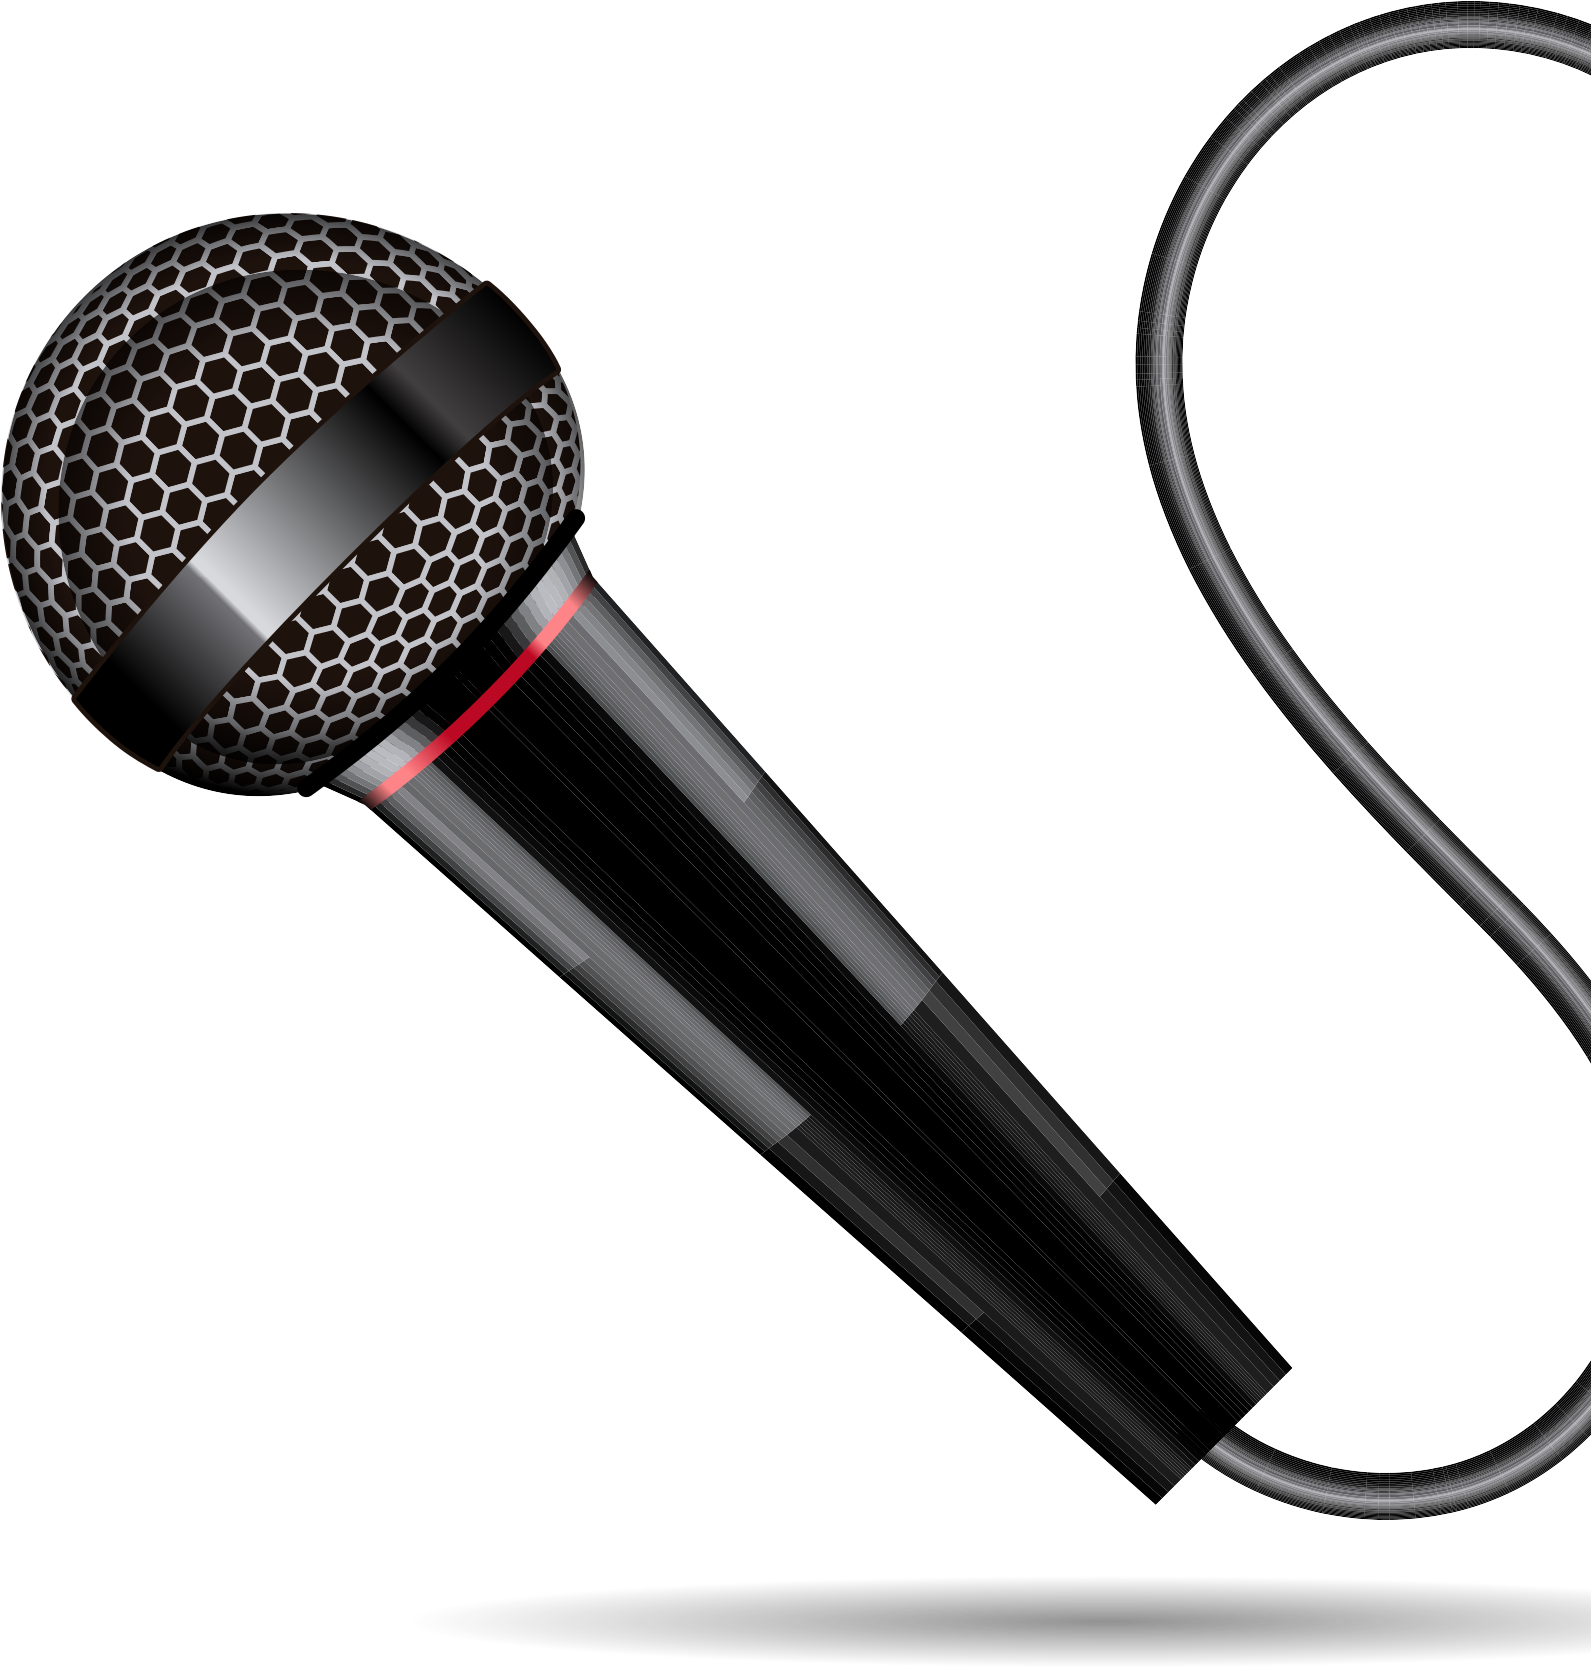 Xlr Microphone Cable Png Download Headphone Ear Pad.